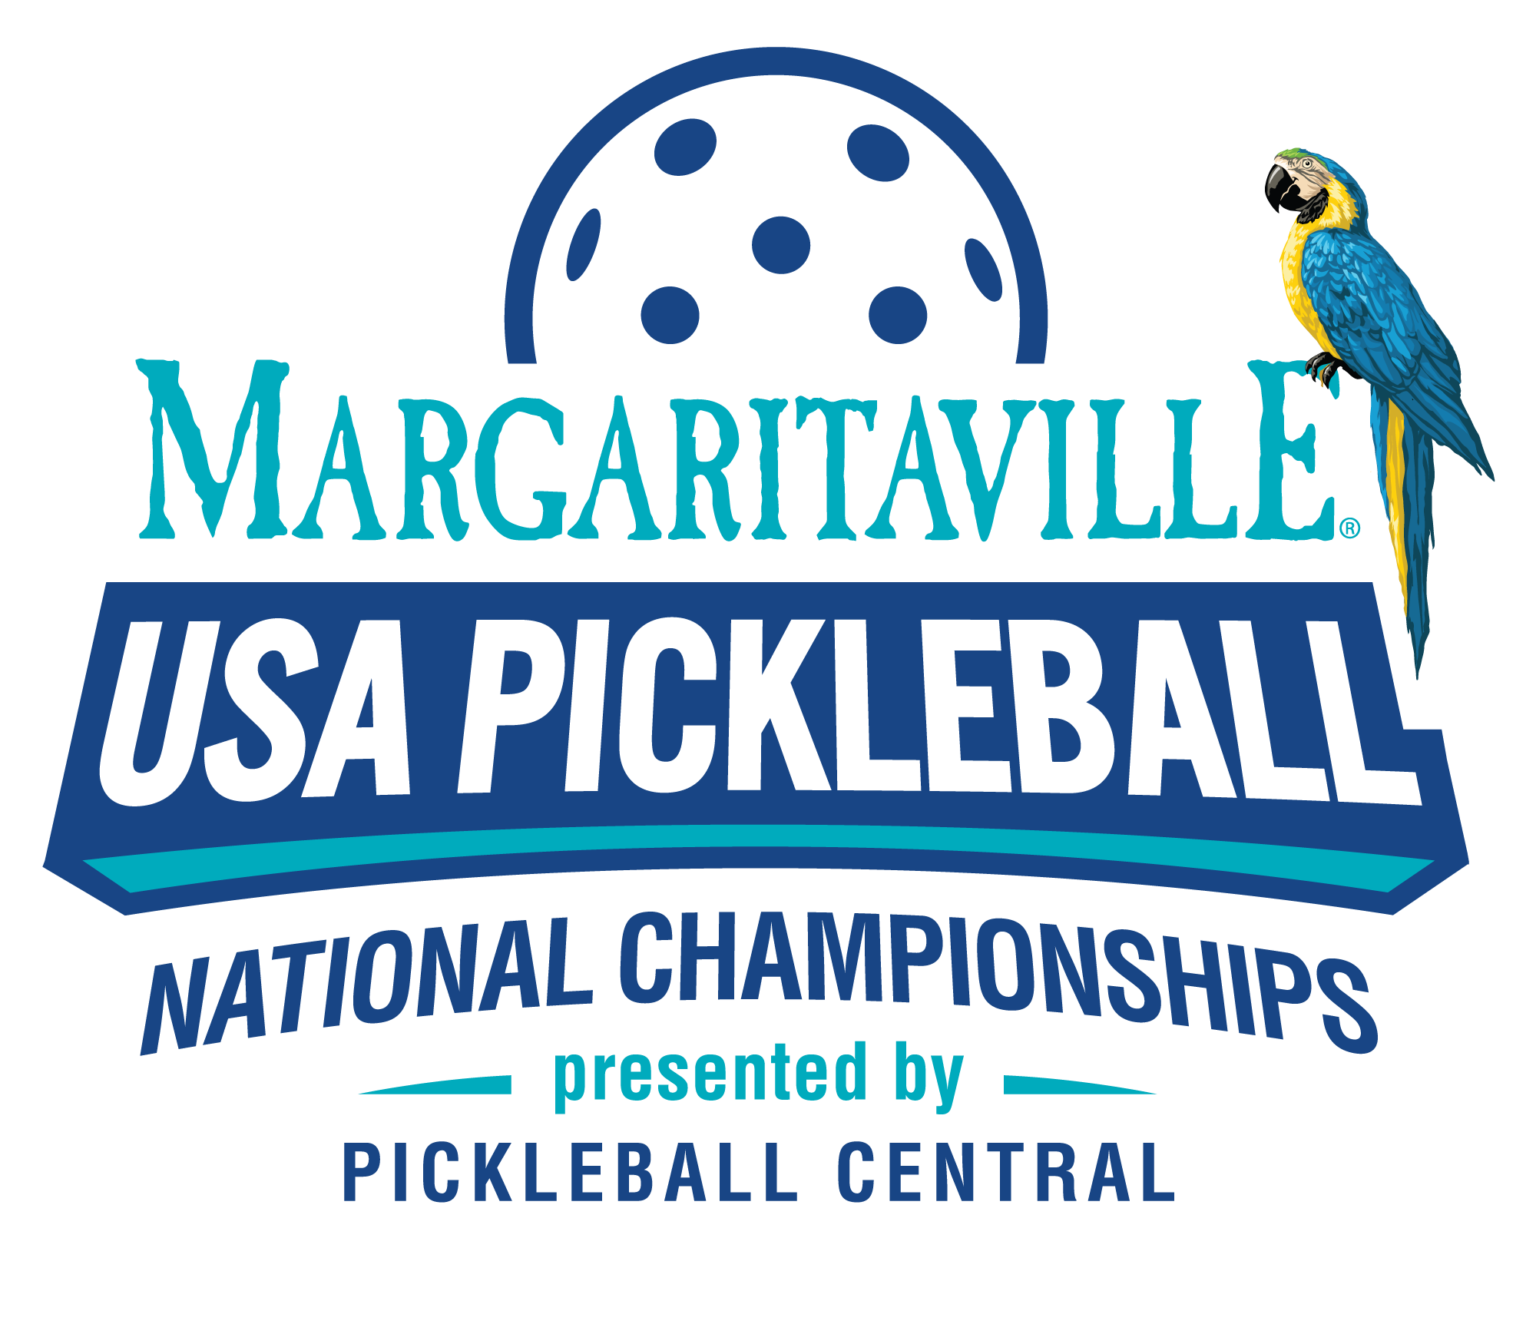 pickleball-logo-2021-update-png-1536x1344.png